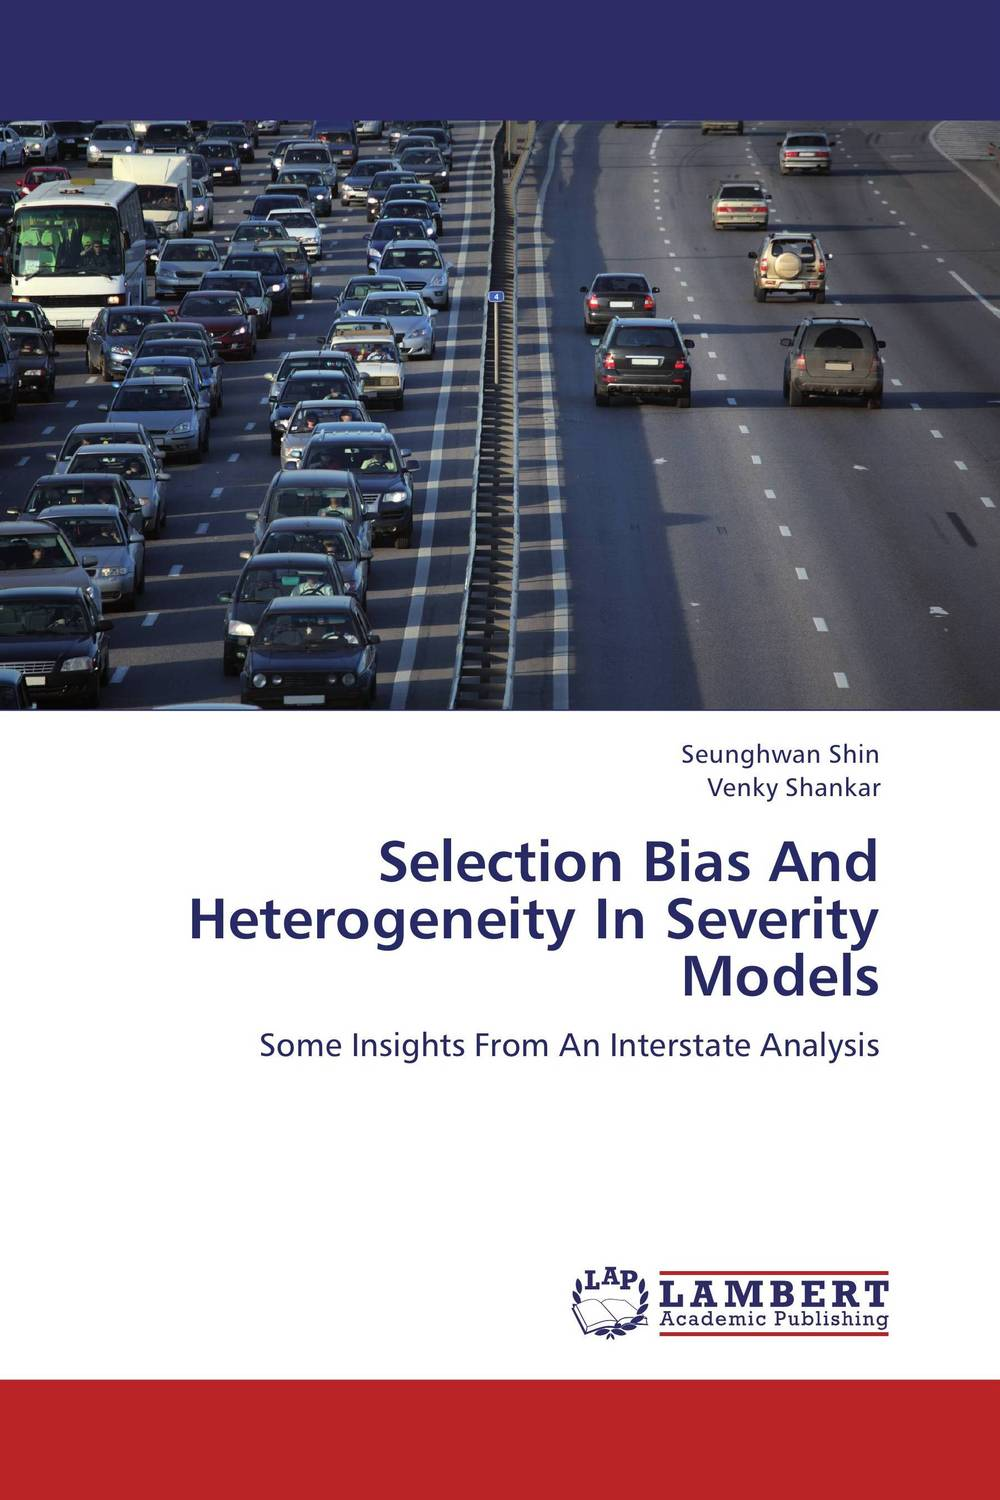 Selection Bias And Heterogeneity In Severity Models купить